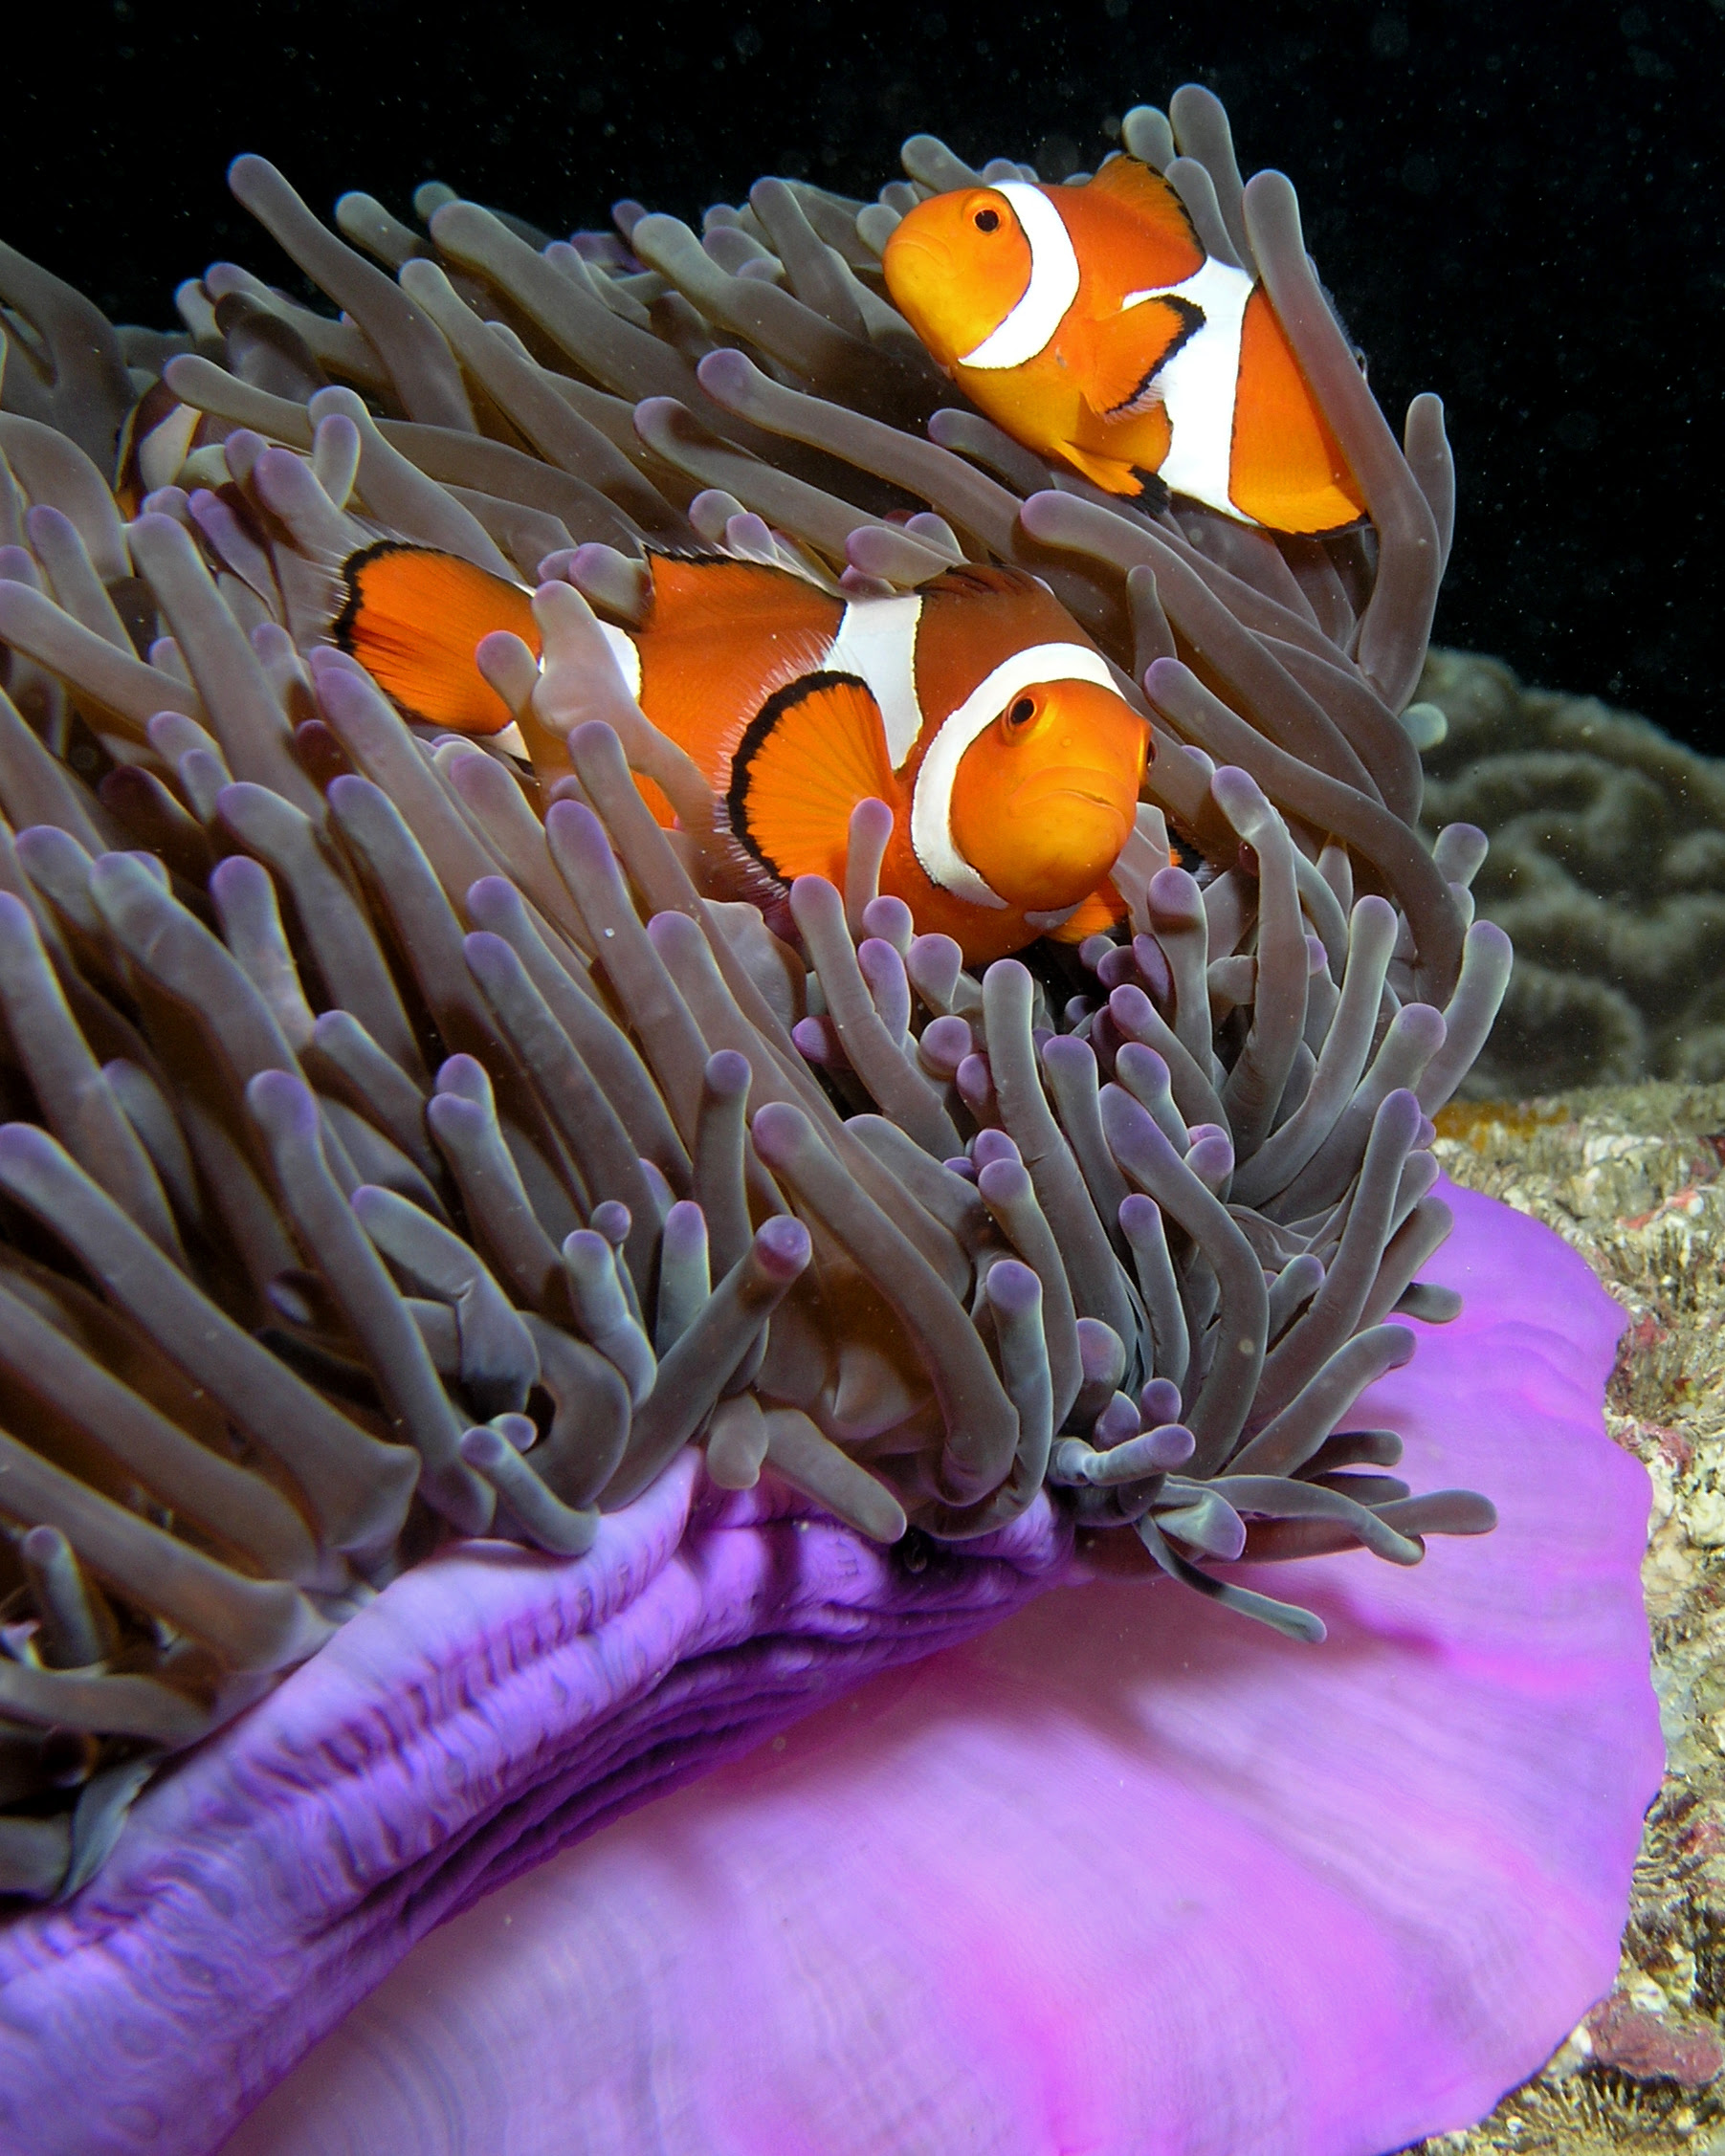 File:Anemone purple anemonefish.jpg